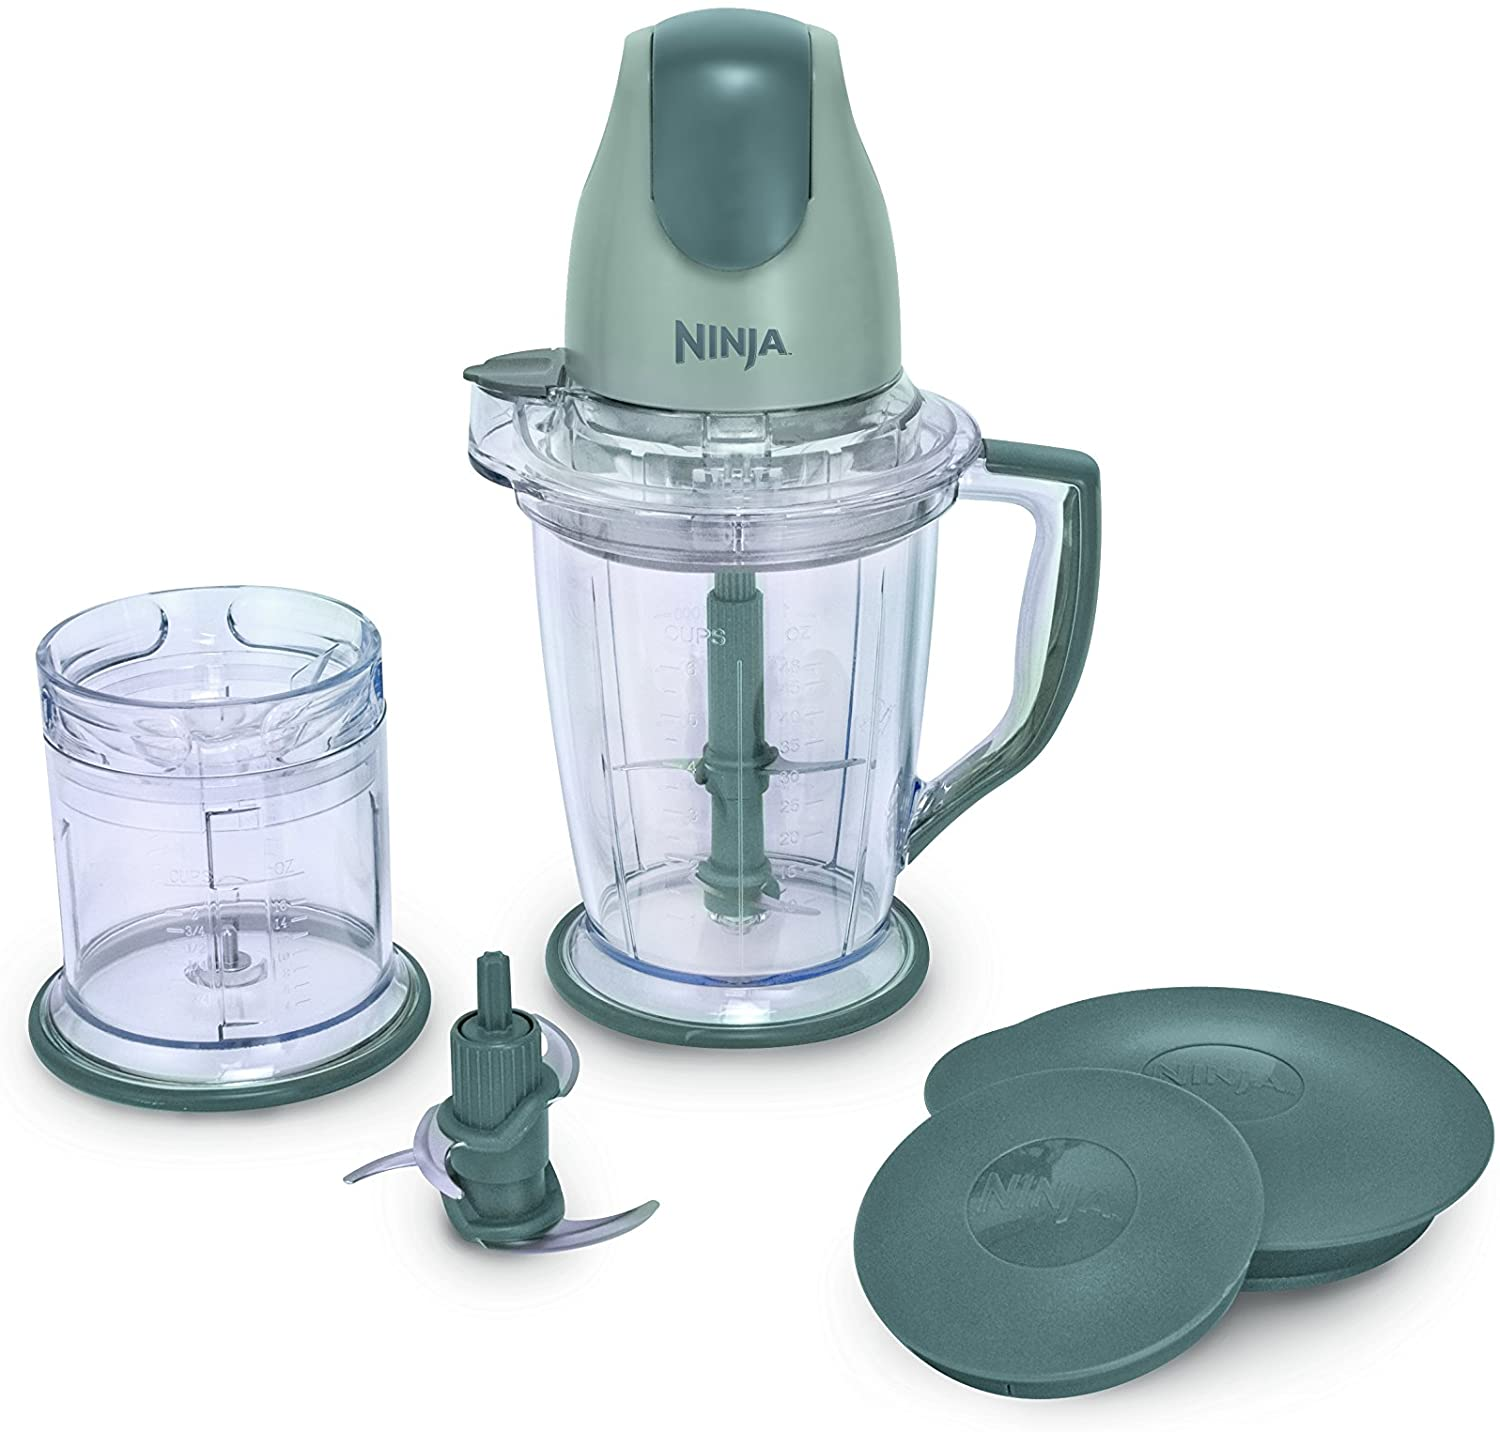 Ninja 400-Watt Blender/Food Processor with plastic green handle and detached covers and blade.